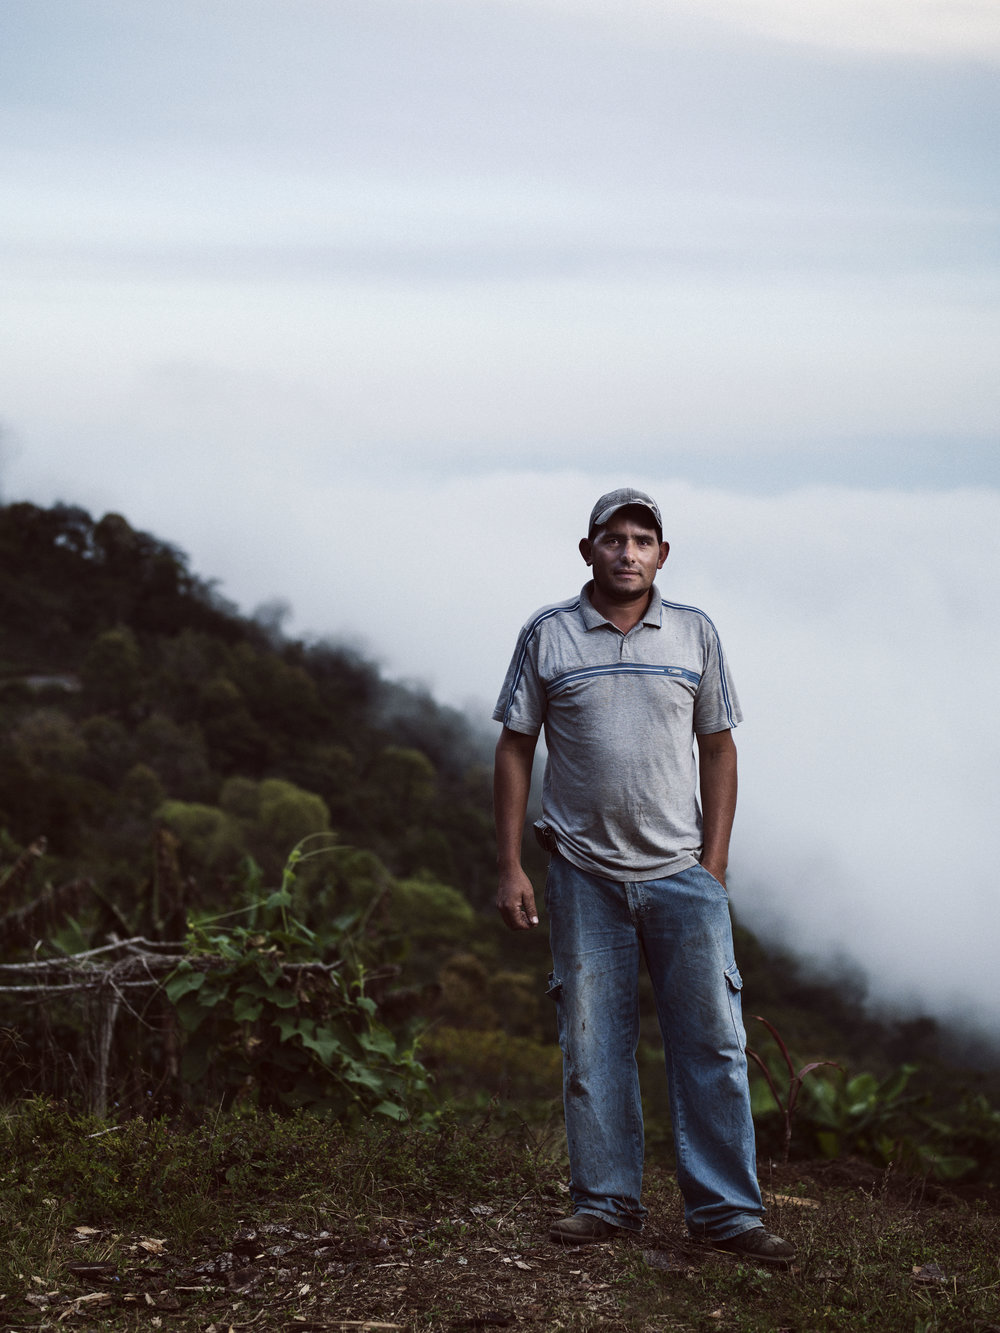 2014_03_08_tk_for_better_coffee_honduras_hasselblad-357_final.jpg